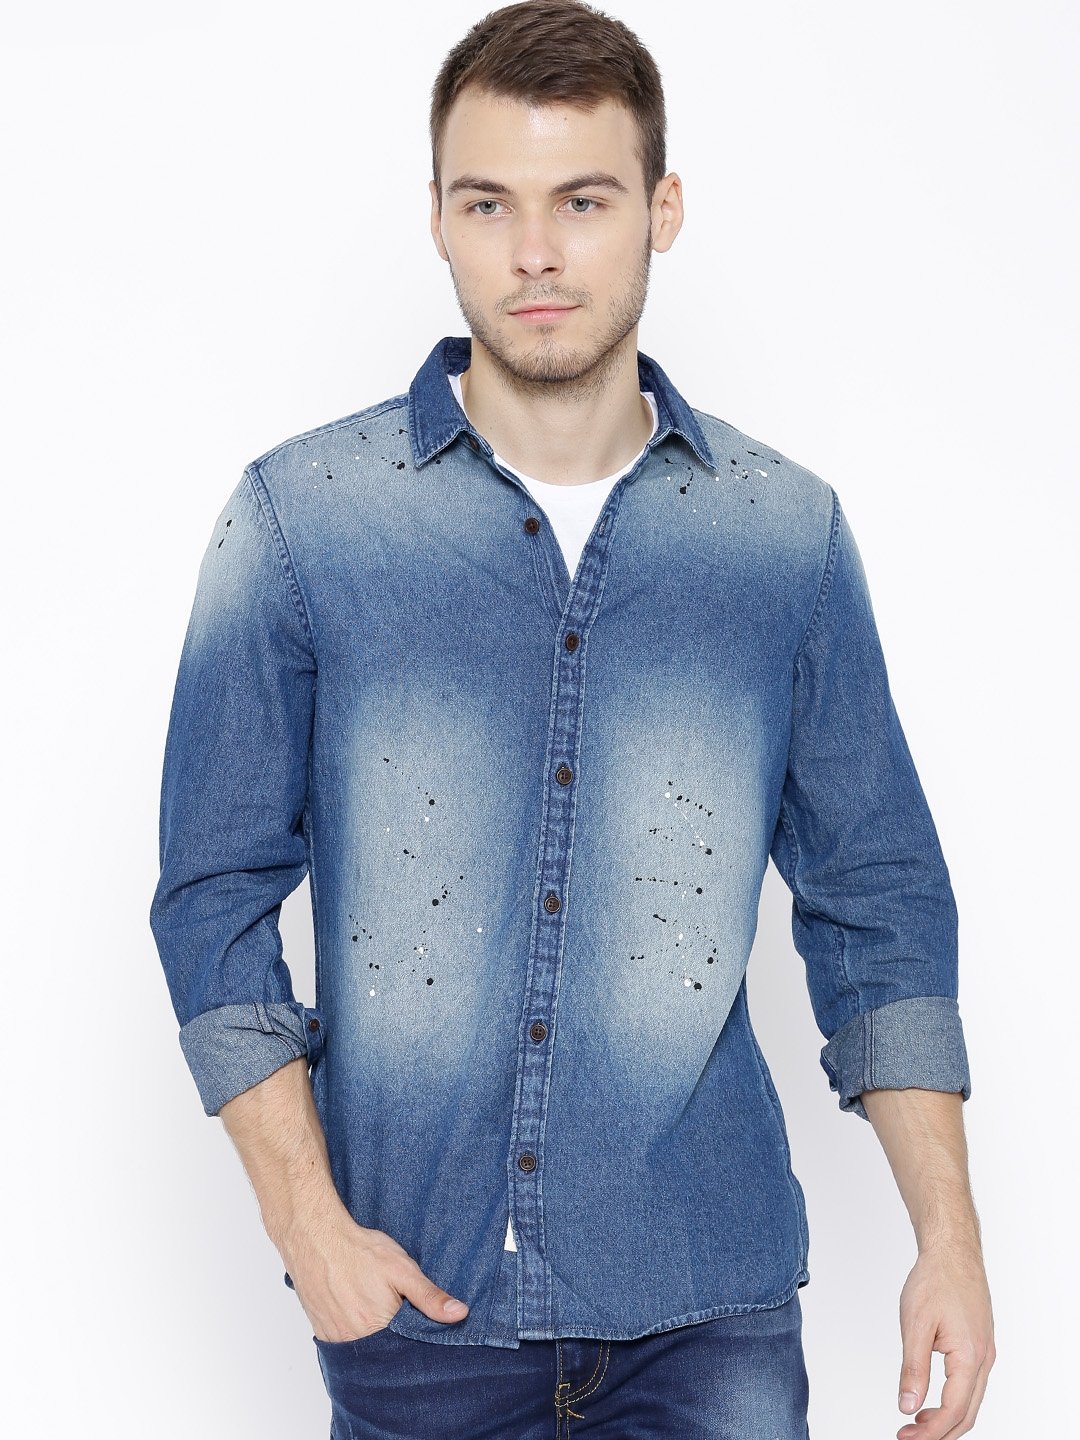 Buy United Colors Of Benetton Blue Washed Denim Shirt - Shirts for ... 2a941feb3e7